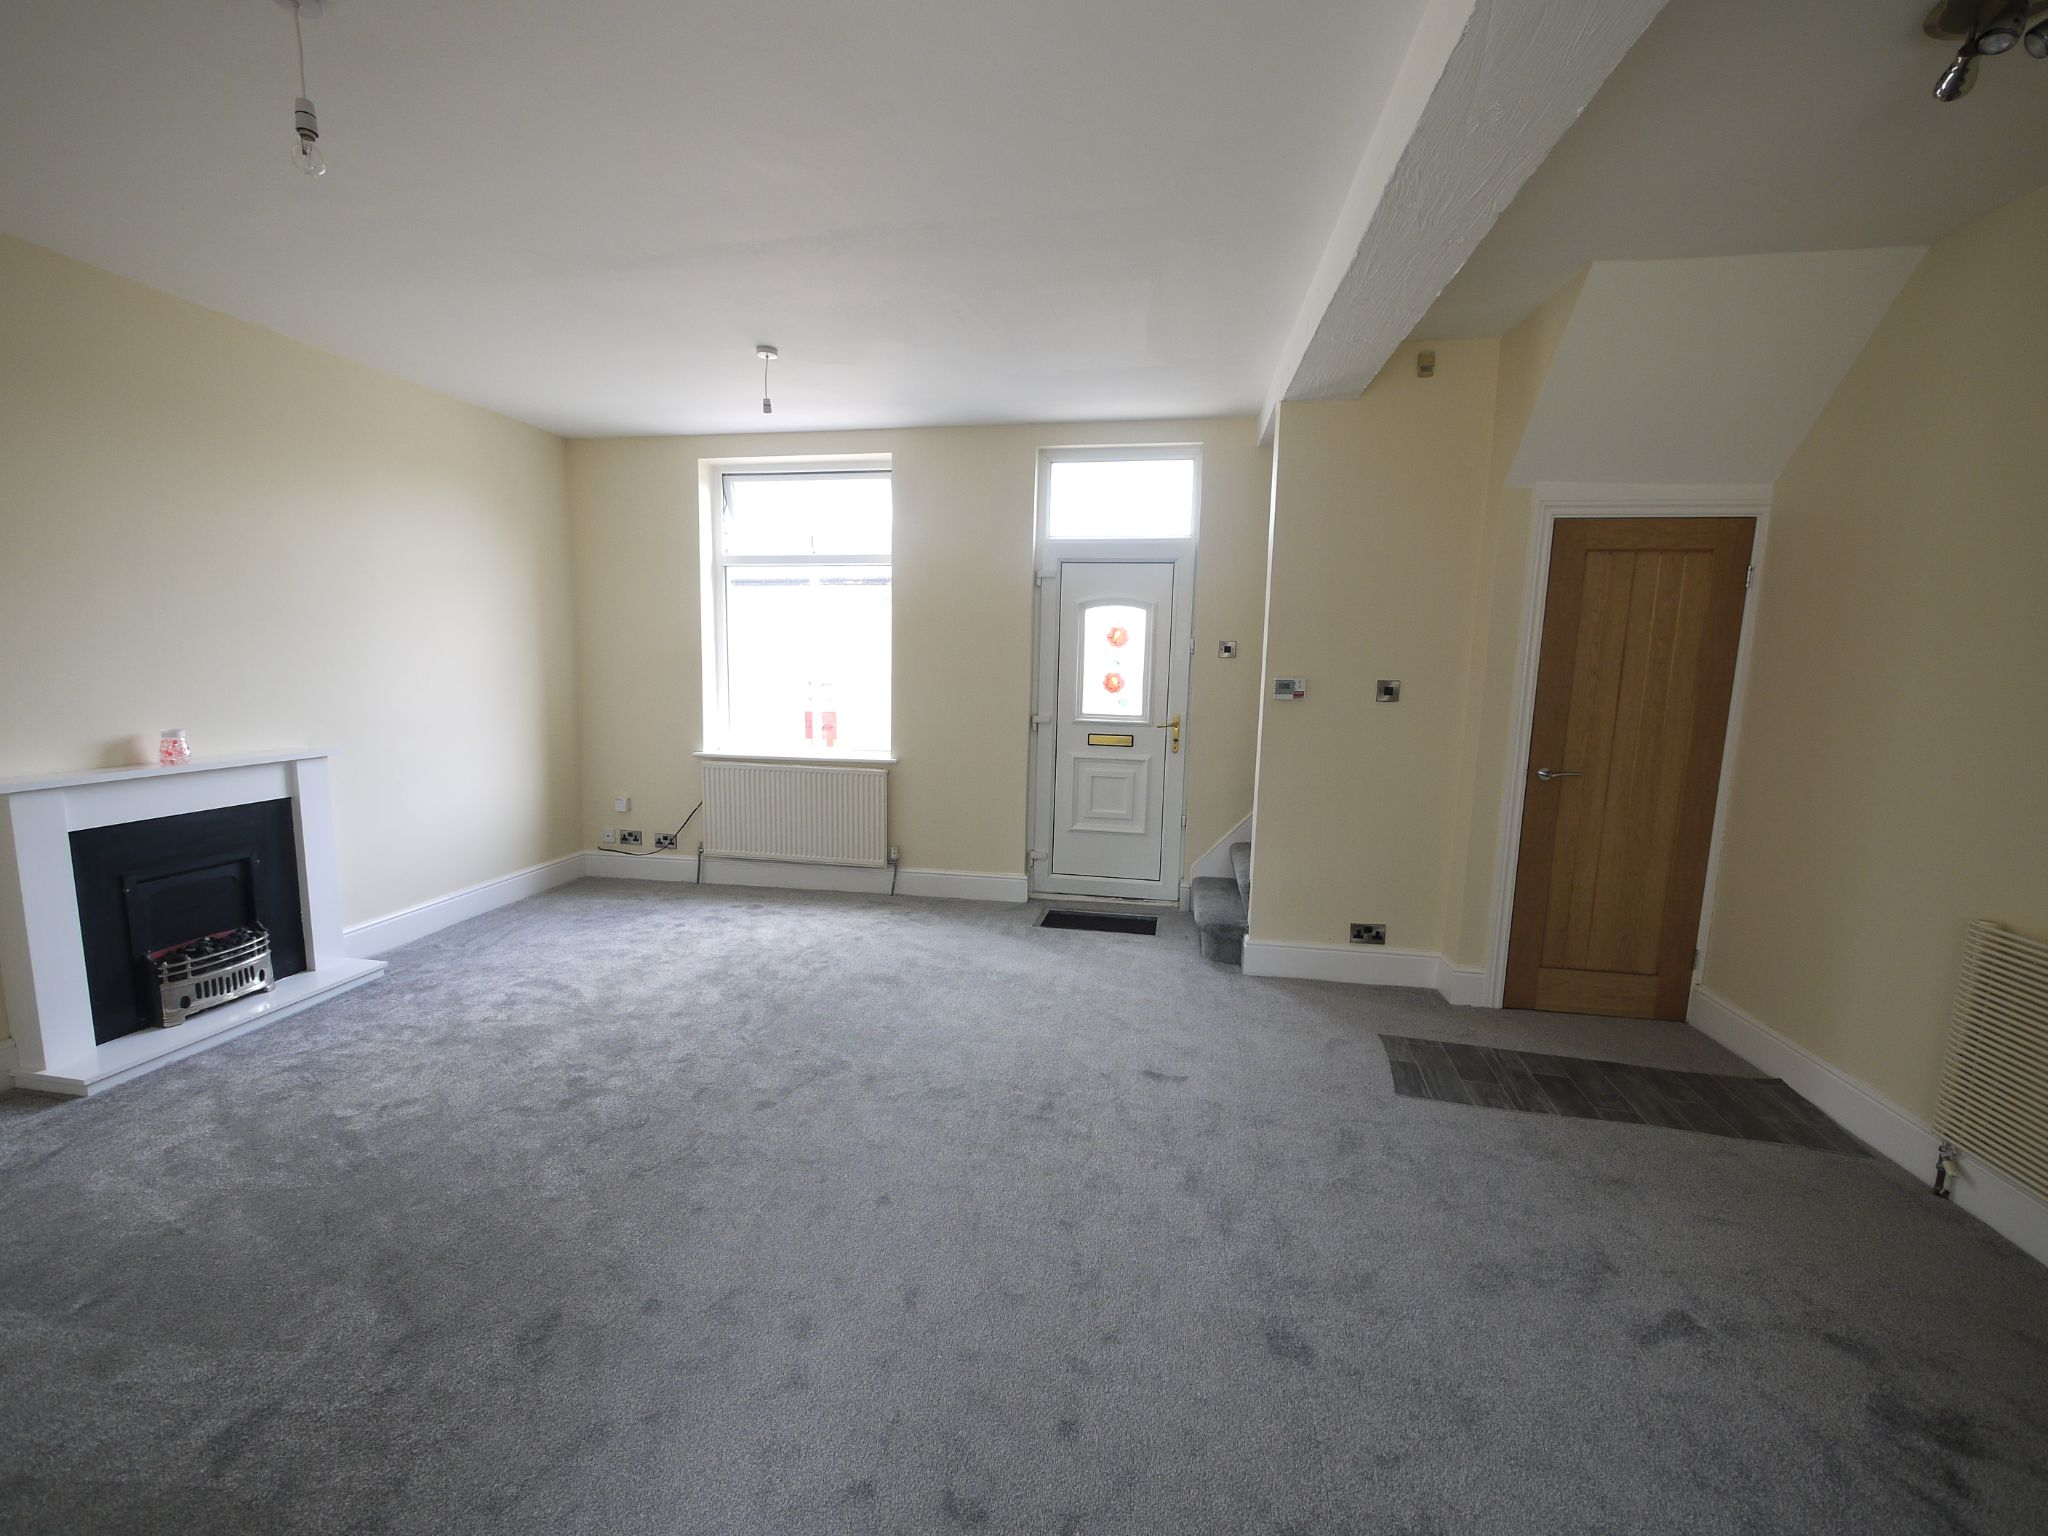 2 bedroom mid terraced house For Sale in Brighouse - Lounge.